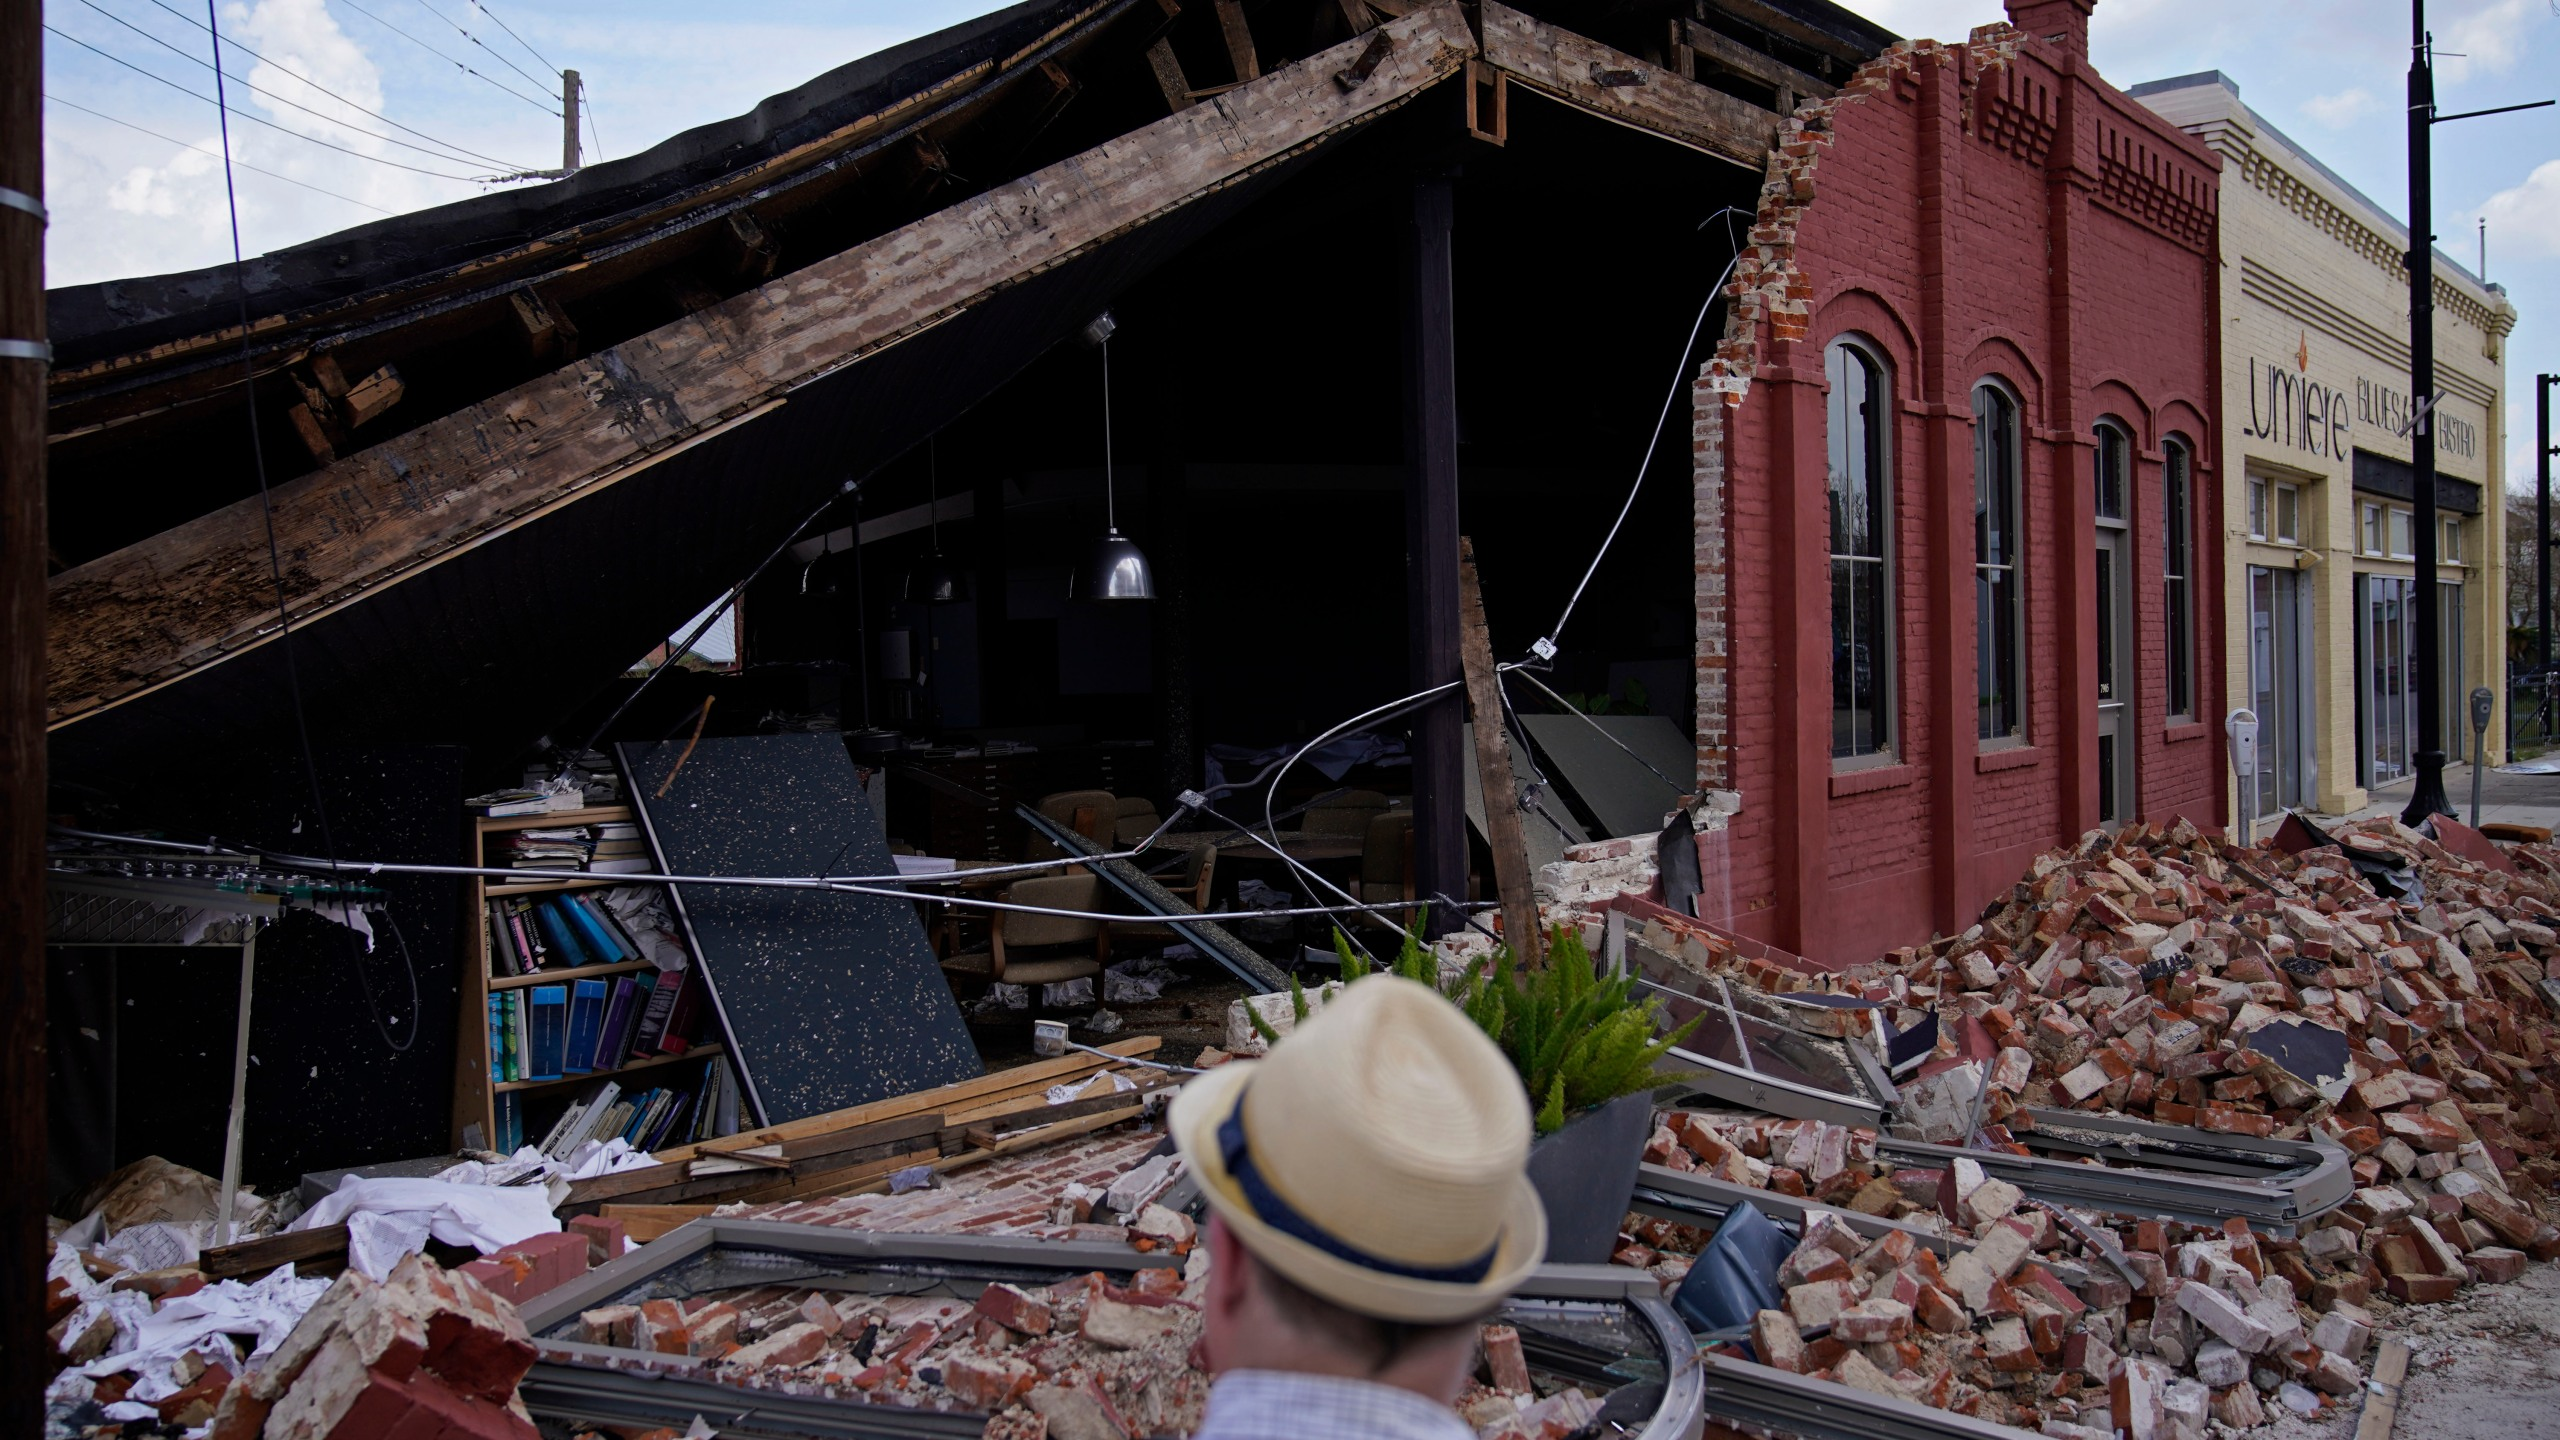 A man looks at a partially collapsed building in the aftermath of Hurricane Ida, Saturday, Sept. 4, 2021, in Houma, La. Full restoration of electricity to some of the hardest-hit areas of Louisiana battered by Hurricane Ida could take until the end of the month, the head of Entergy Louisiana warned Saturday. (AP Photo/John Locher)